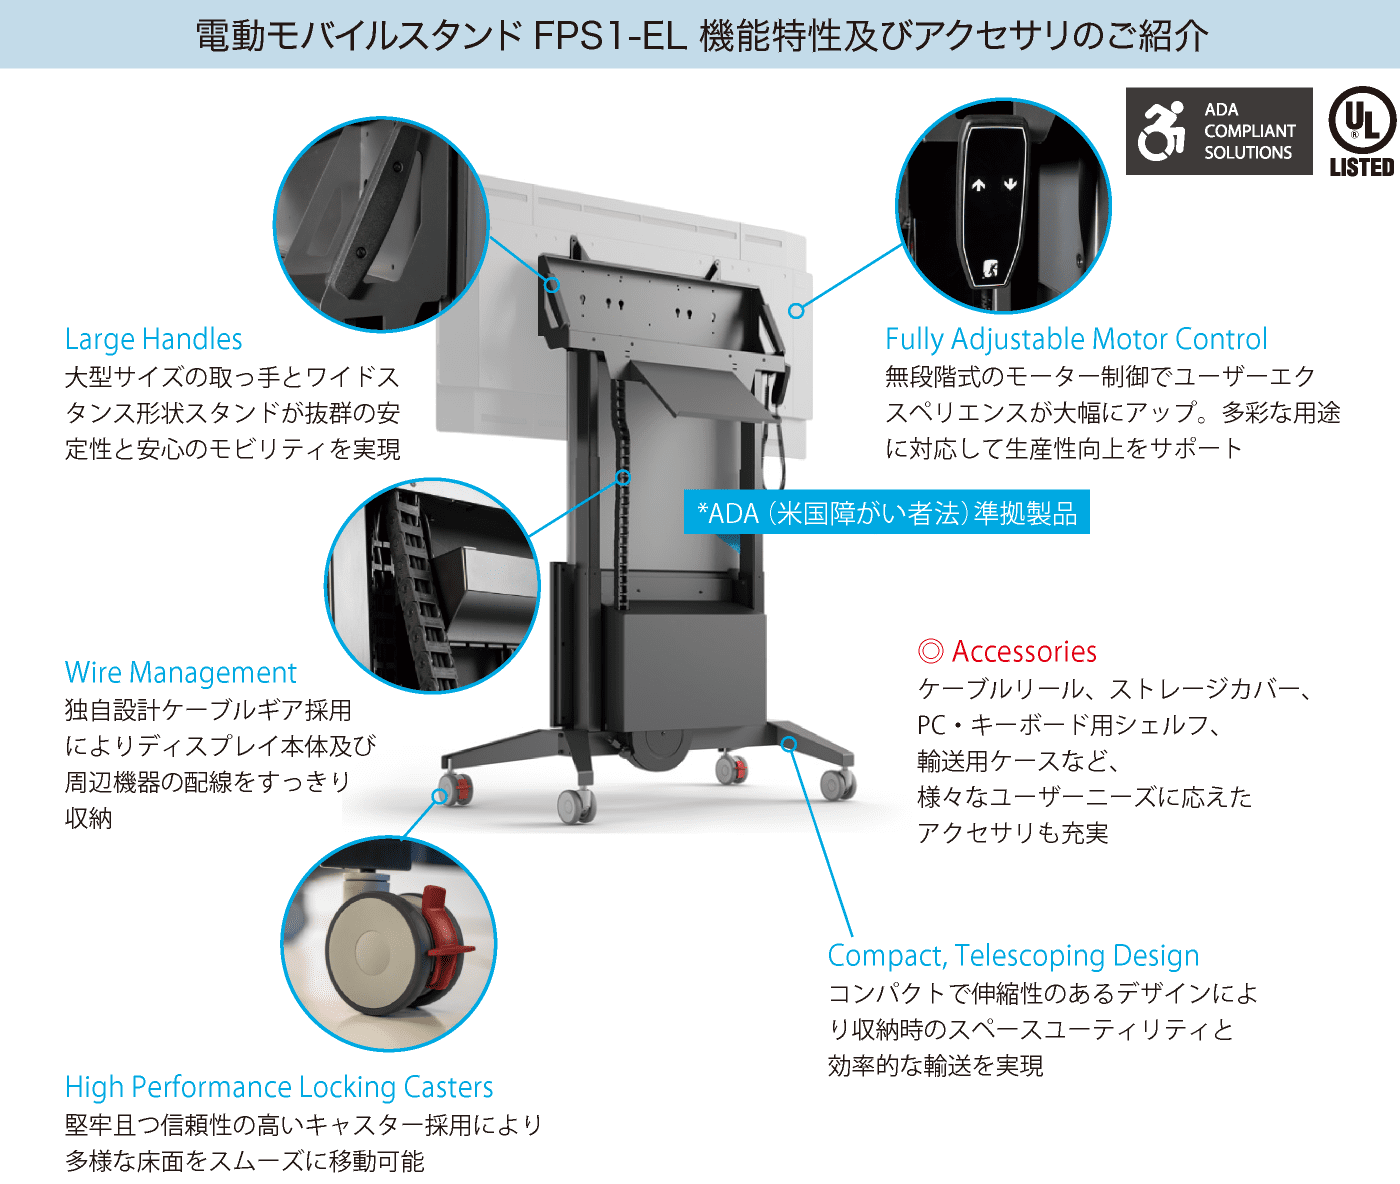 電動モバイルスタンドFPS1-EL 機能特性及びアクセサリのご紹介。Large Handles, Wire Management, High Performance Locking Casters, Fully Adjustable Motor Control, Compact, Telescoping Design, ◎Accessories, *ADA(米国障がい者法)準拠製品